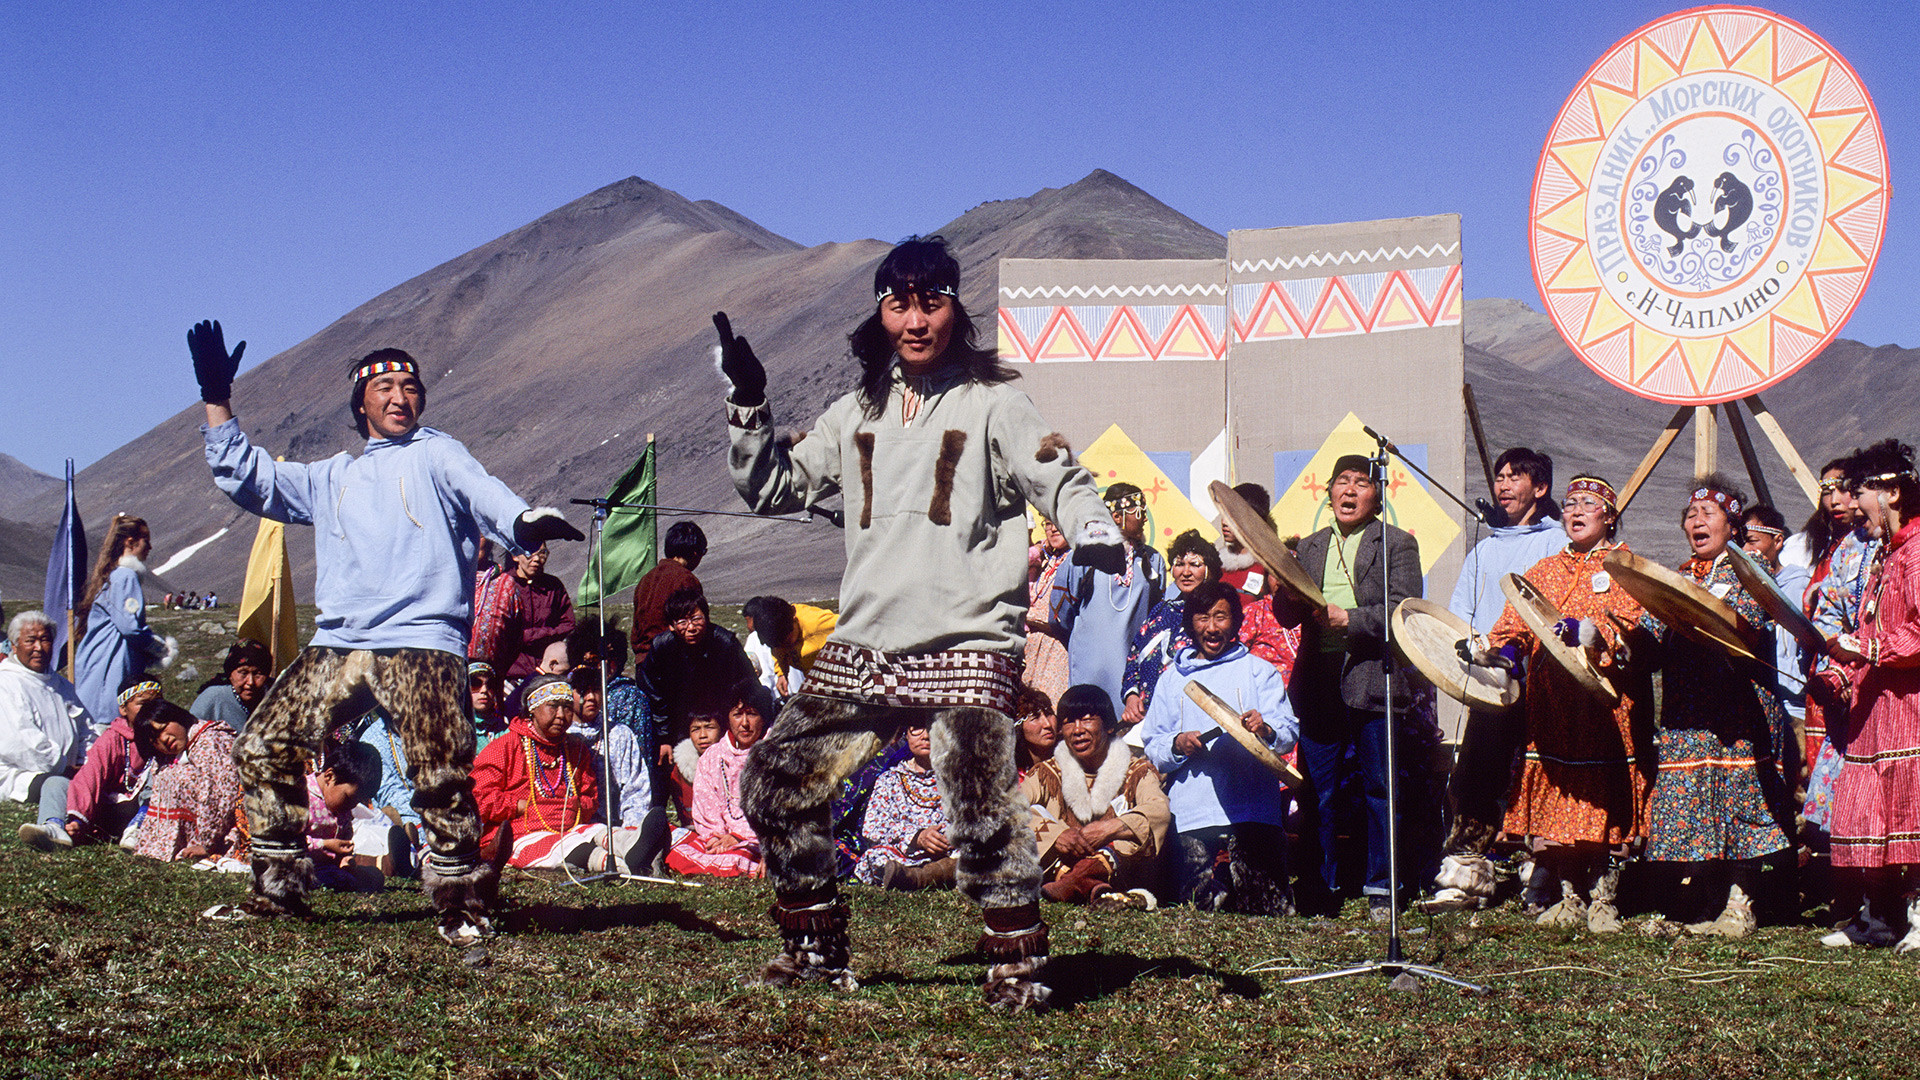 Russia, Magadan Region, Chukotskiy, Novoye Chaplino, Hunter's Festival, Traditional Dances.